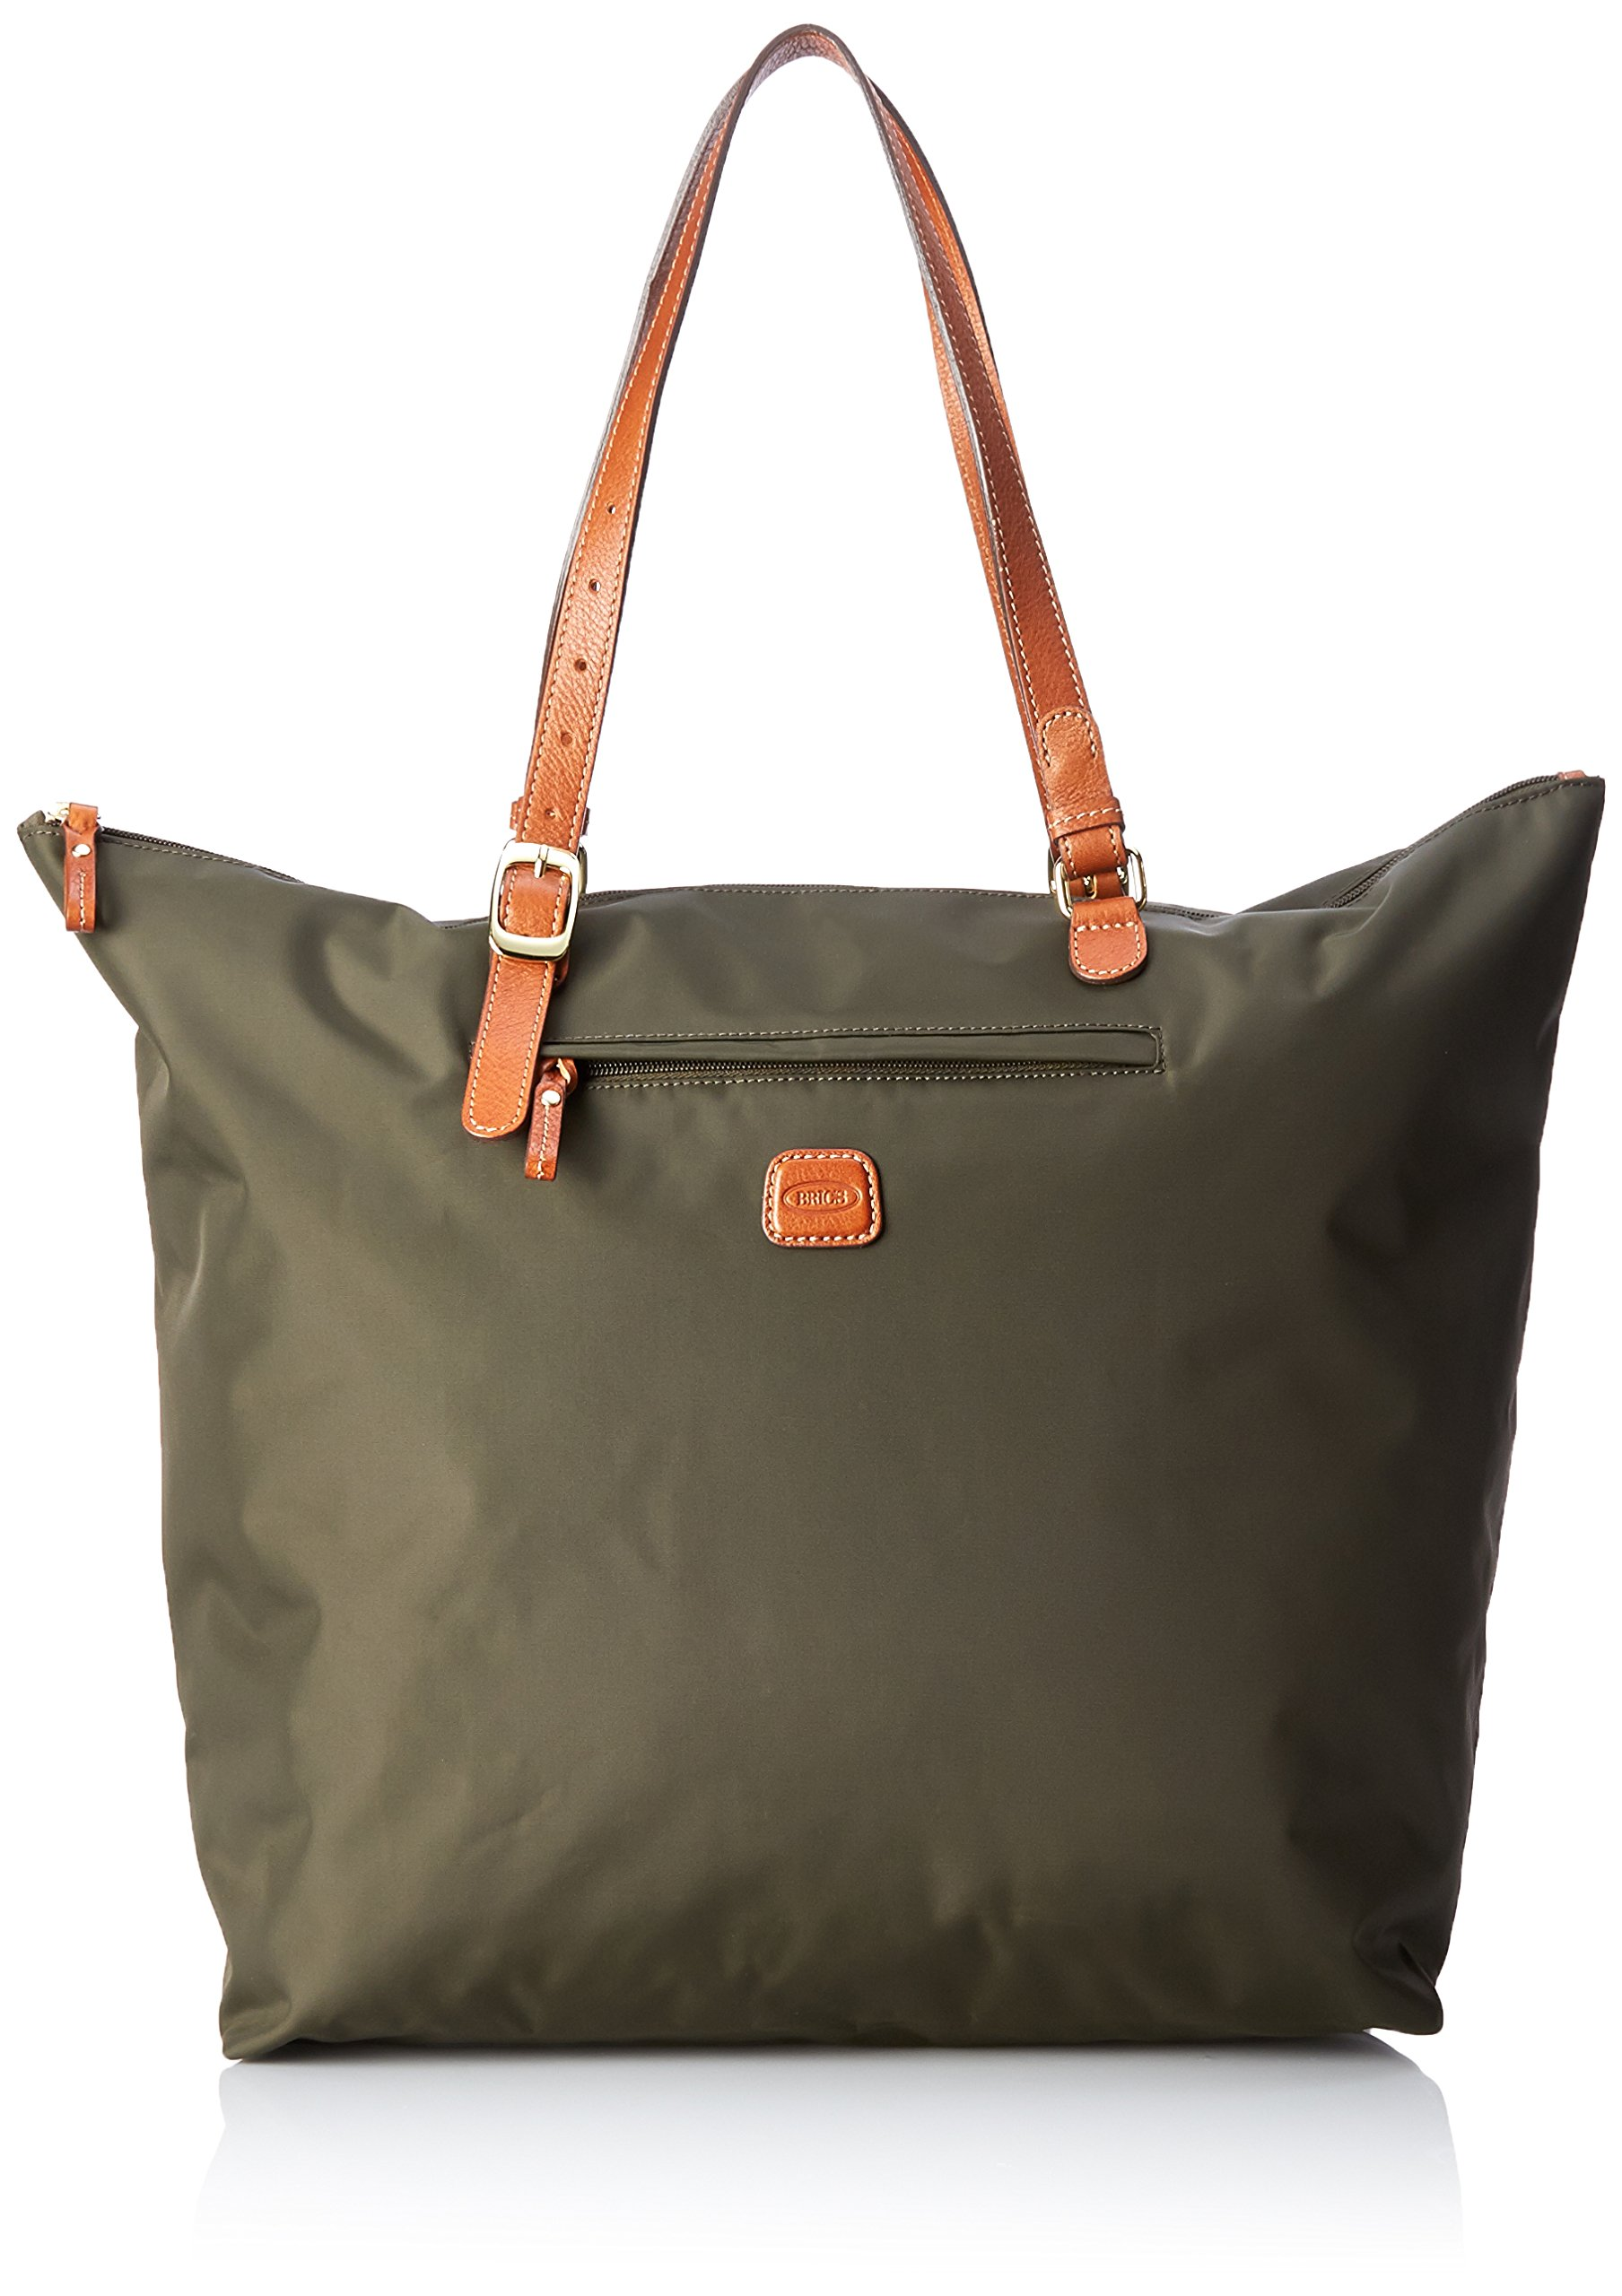 Bric's Xl Sportina, Olive, One Size by Bric's